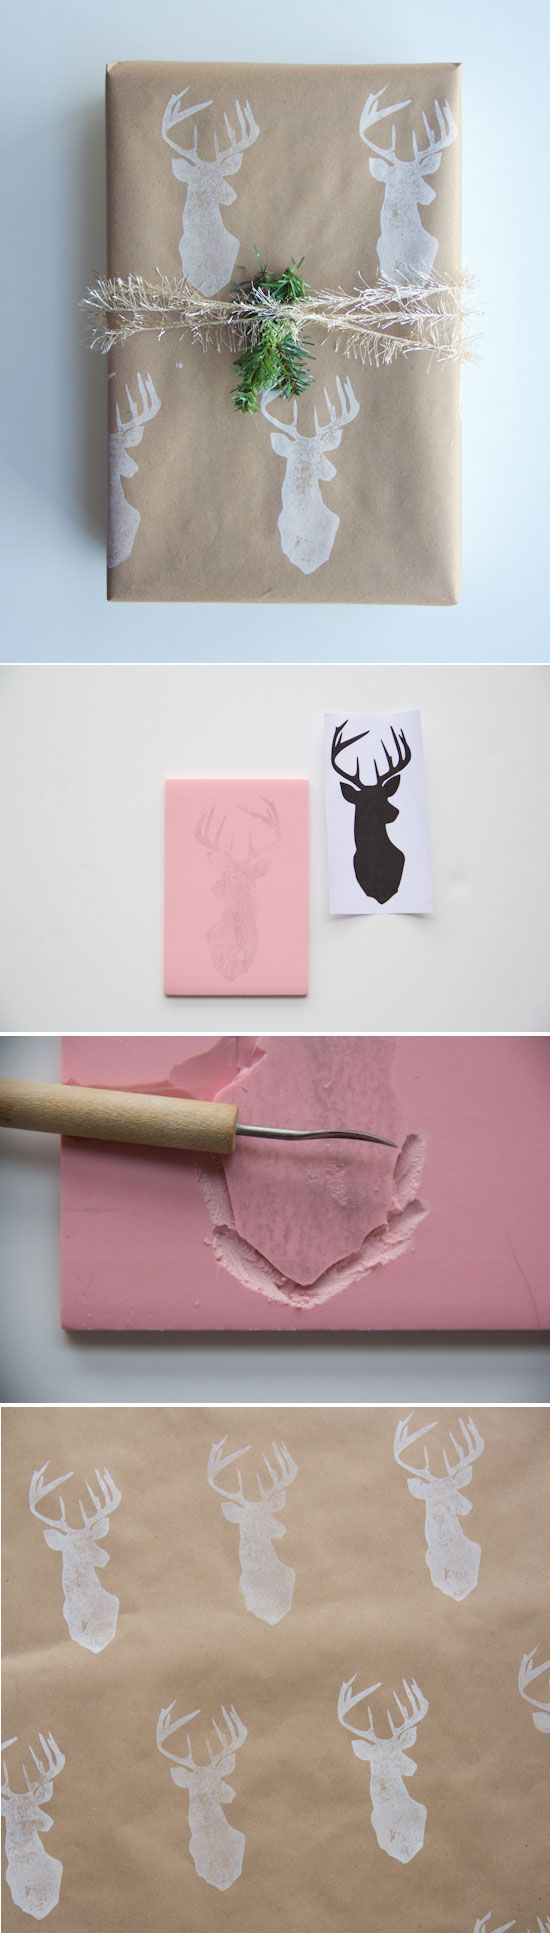 DIY : Wrapping Paper + Stamp Tutorial by @Chelsea Rose Rose Costa for Poppytalk